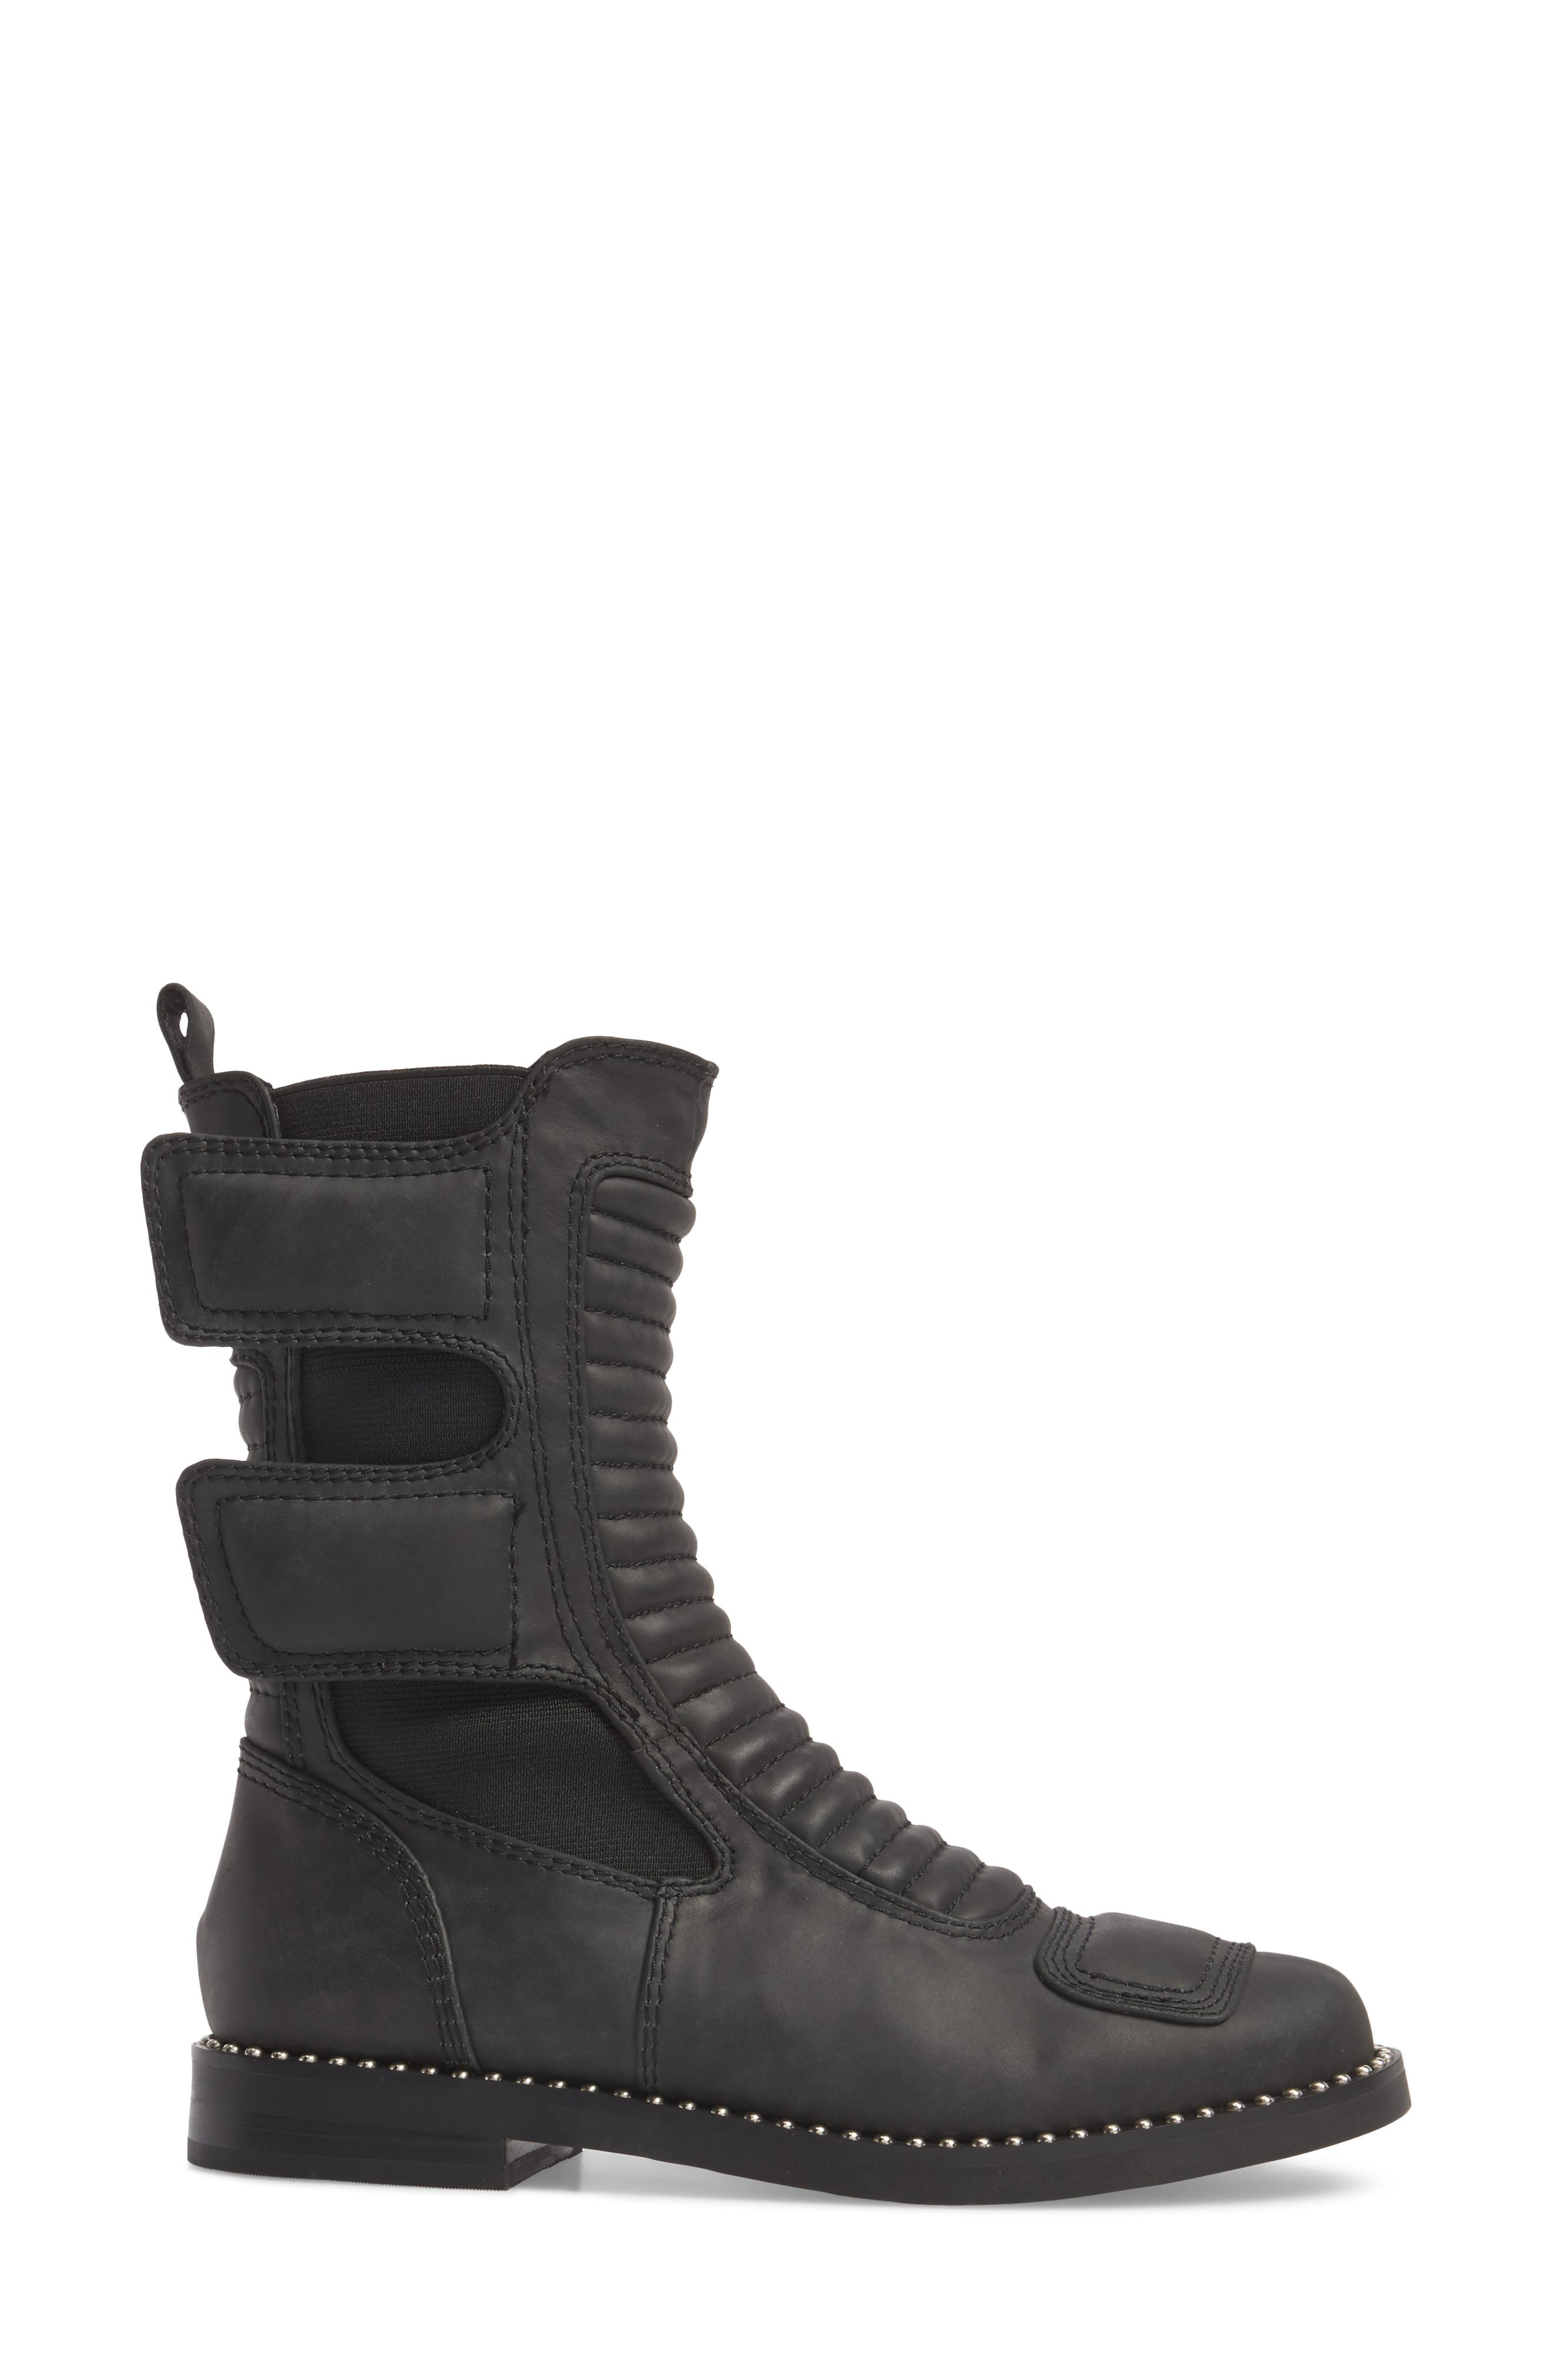 Police Boot,                             Alternate thumbnail 5, color,